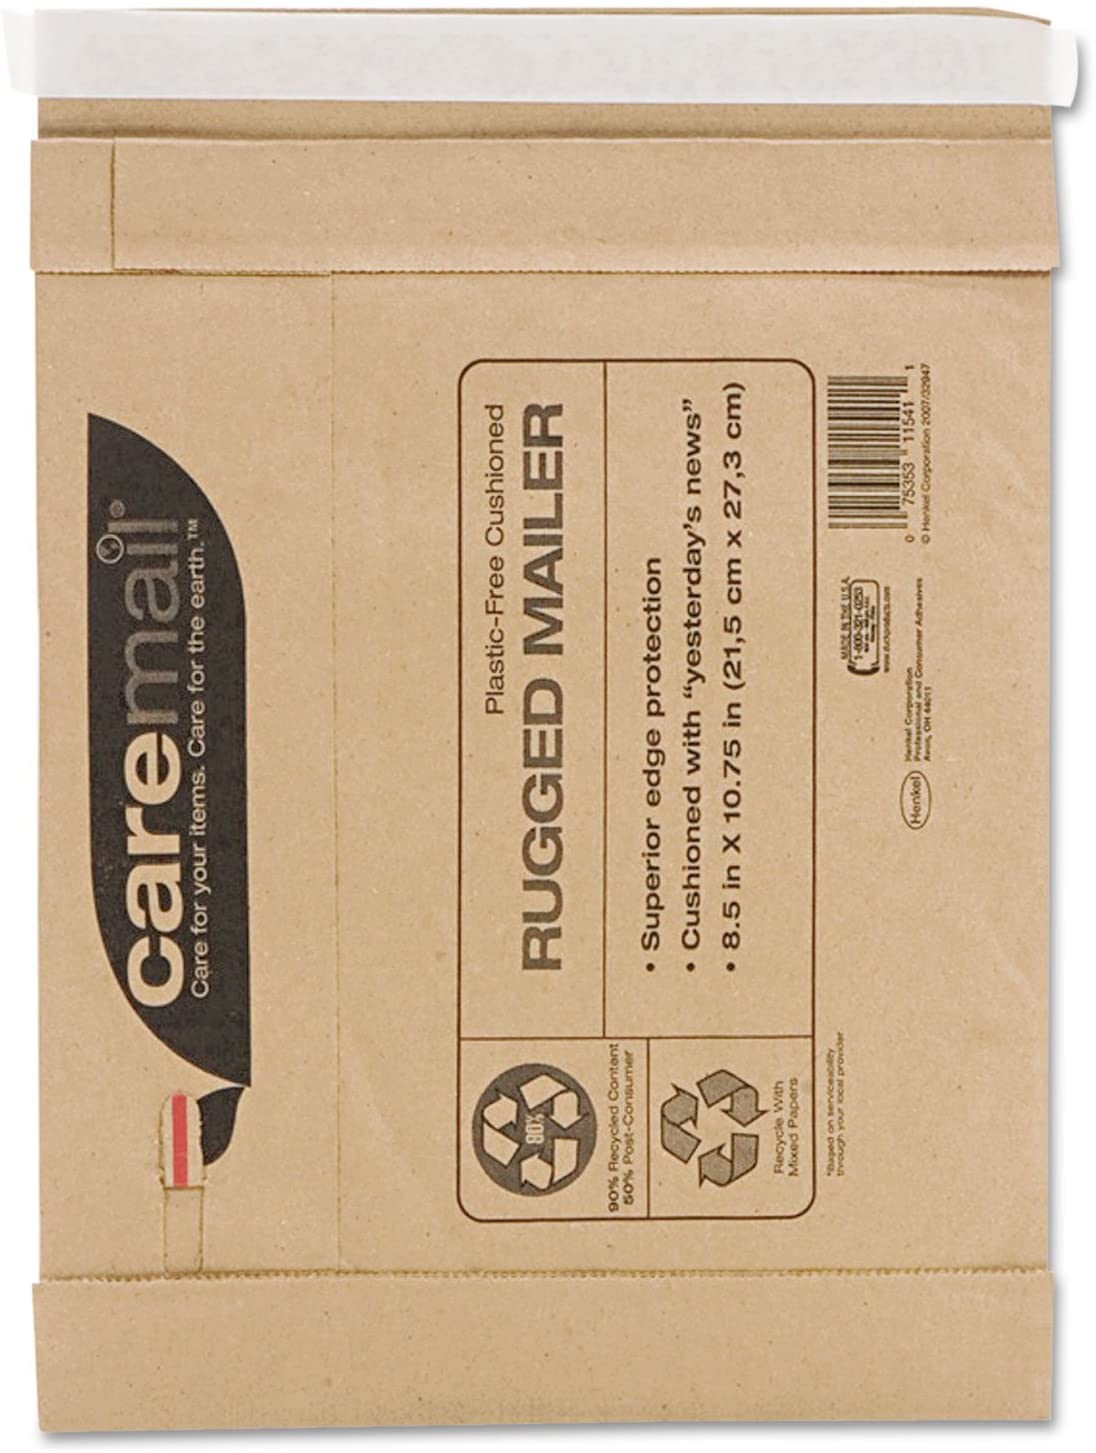 Duckamp;reg; Caremail Rugged Padded Mailer, Side Seam, 8 1/2 x 10 3/4, Light Brown, 25/Pack